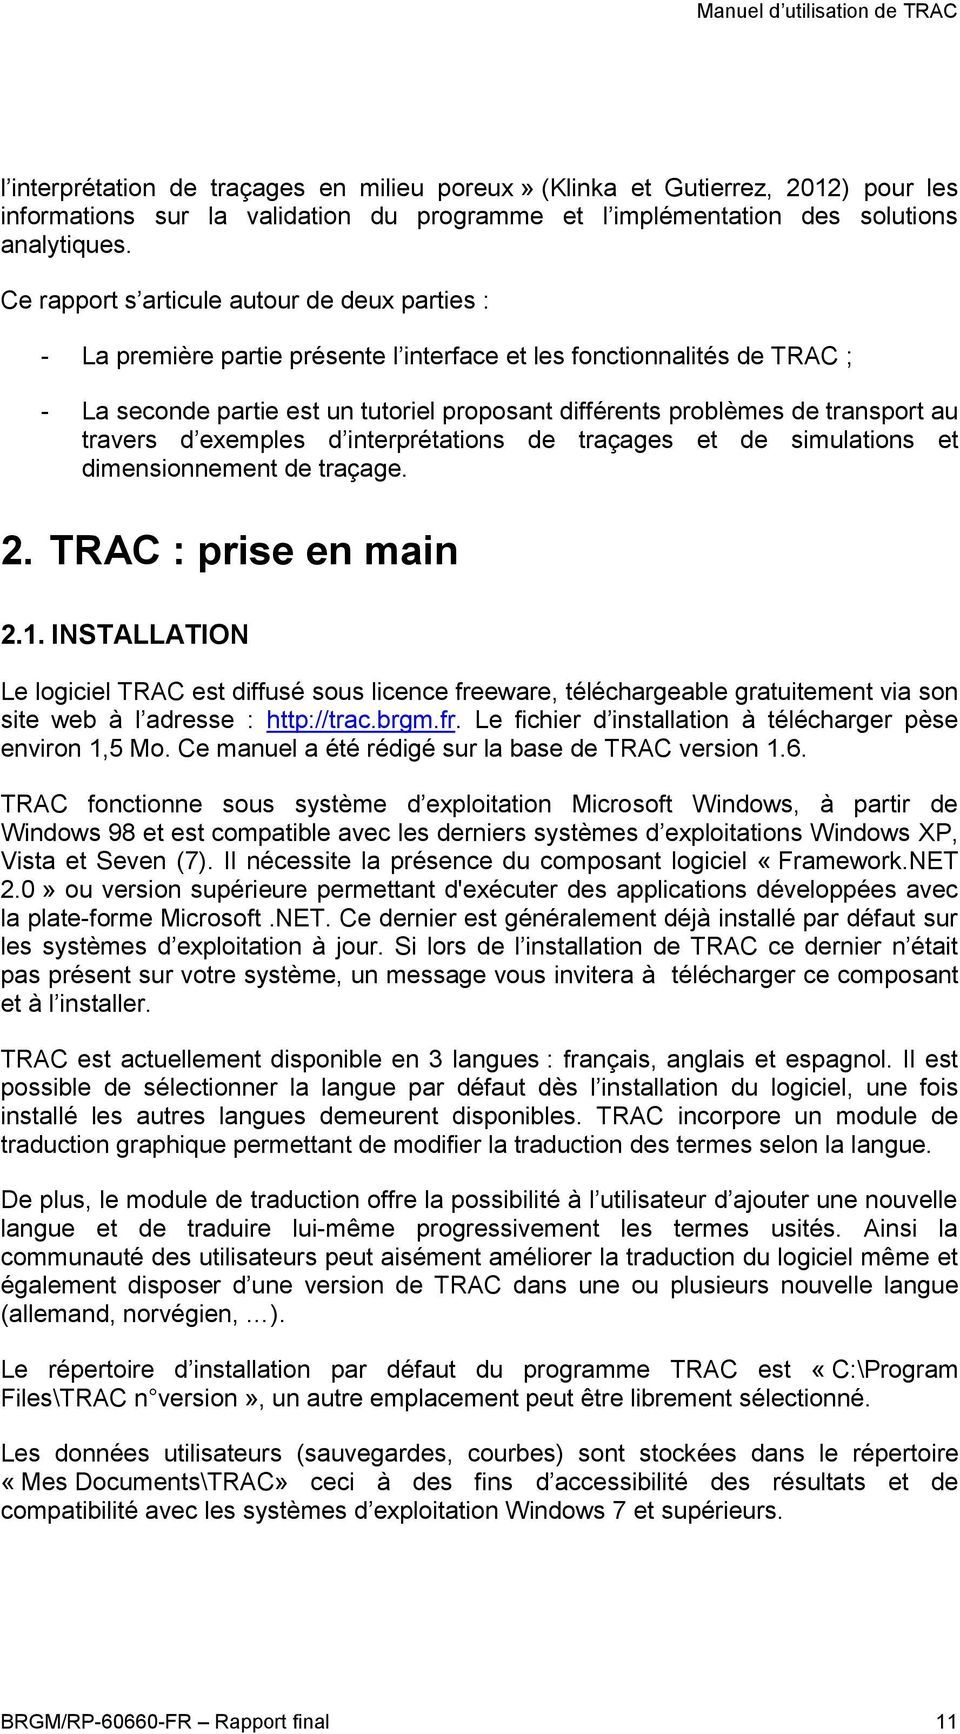 transport au travers d exemples d interprétations de traçages et de simulations et dimensionnement de traçage. 2. TRAC : prise en main 2.1.